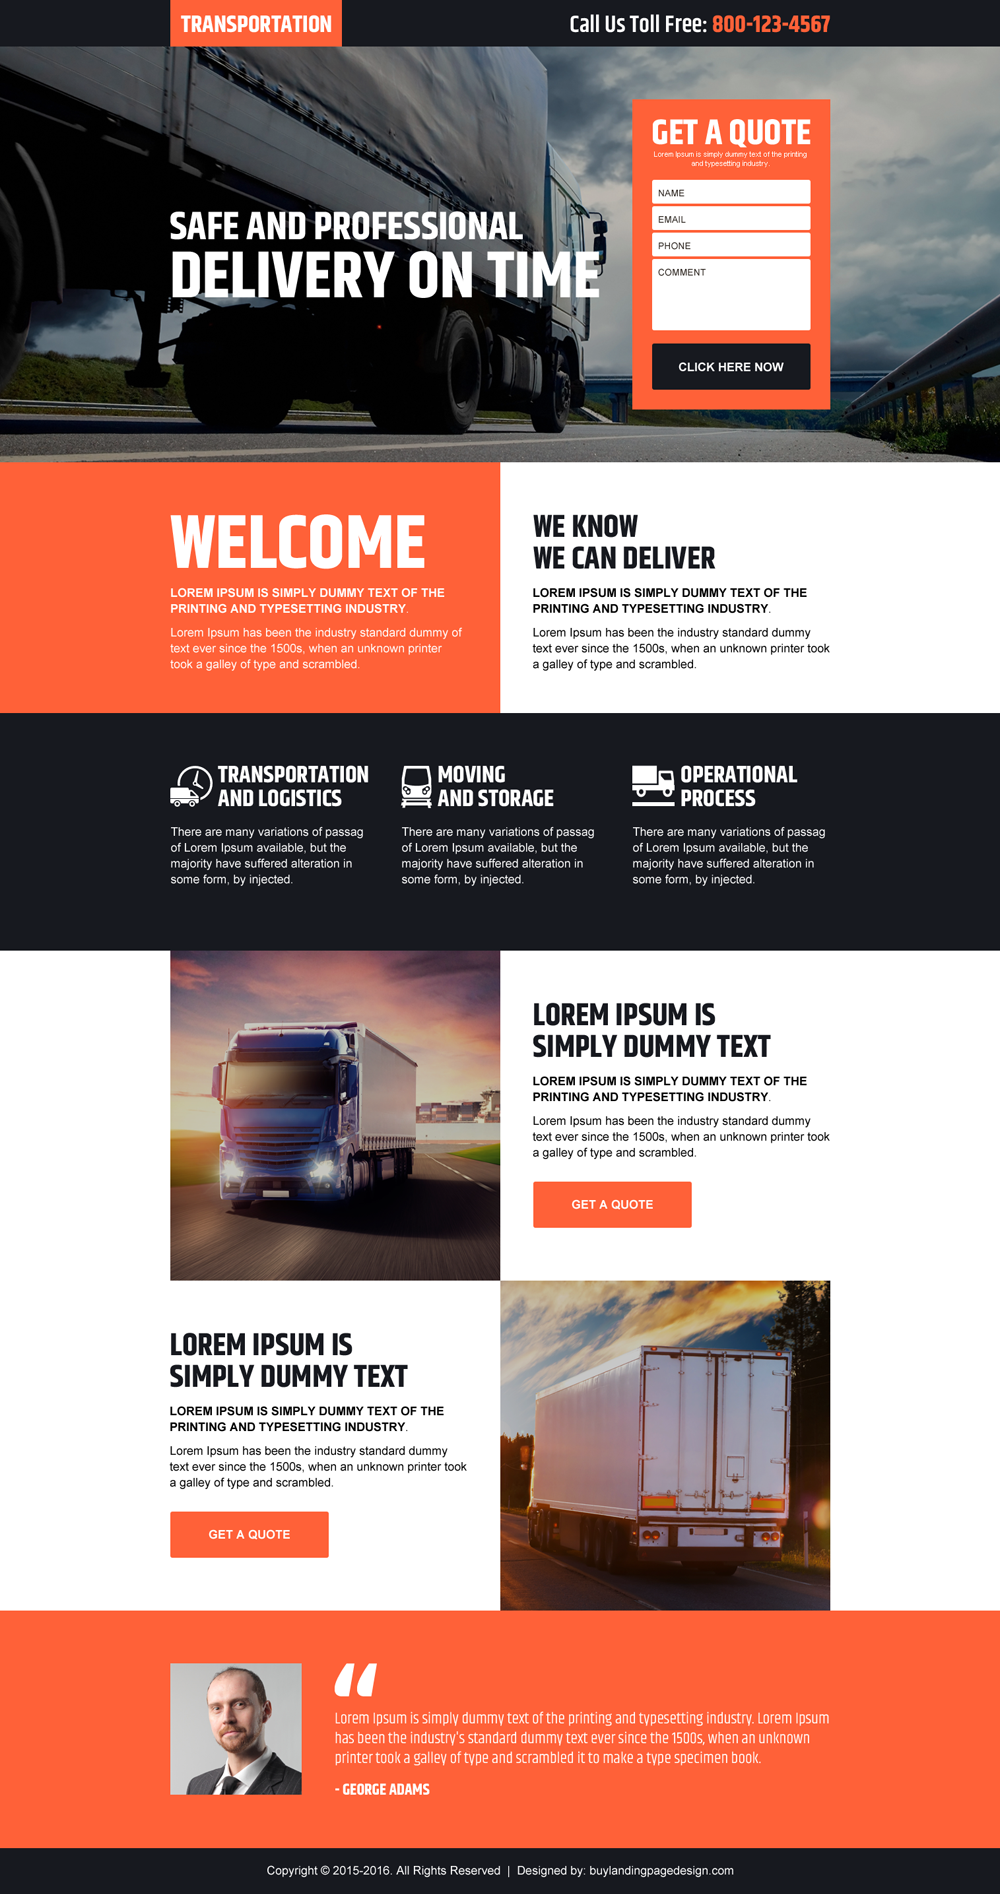 transportation-service-free-quote-lead-gen-converting-responsive-landing-page-design-001